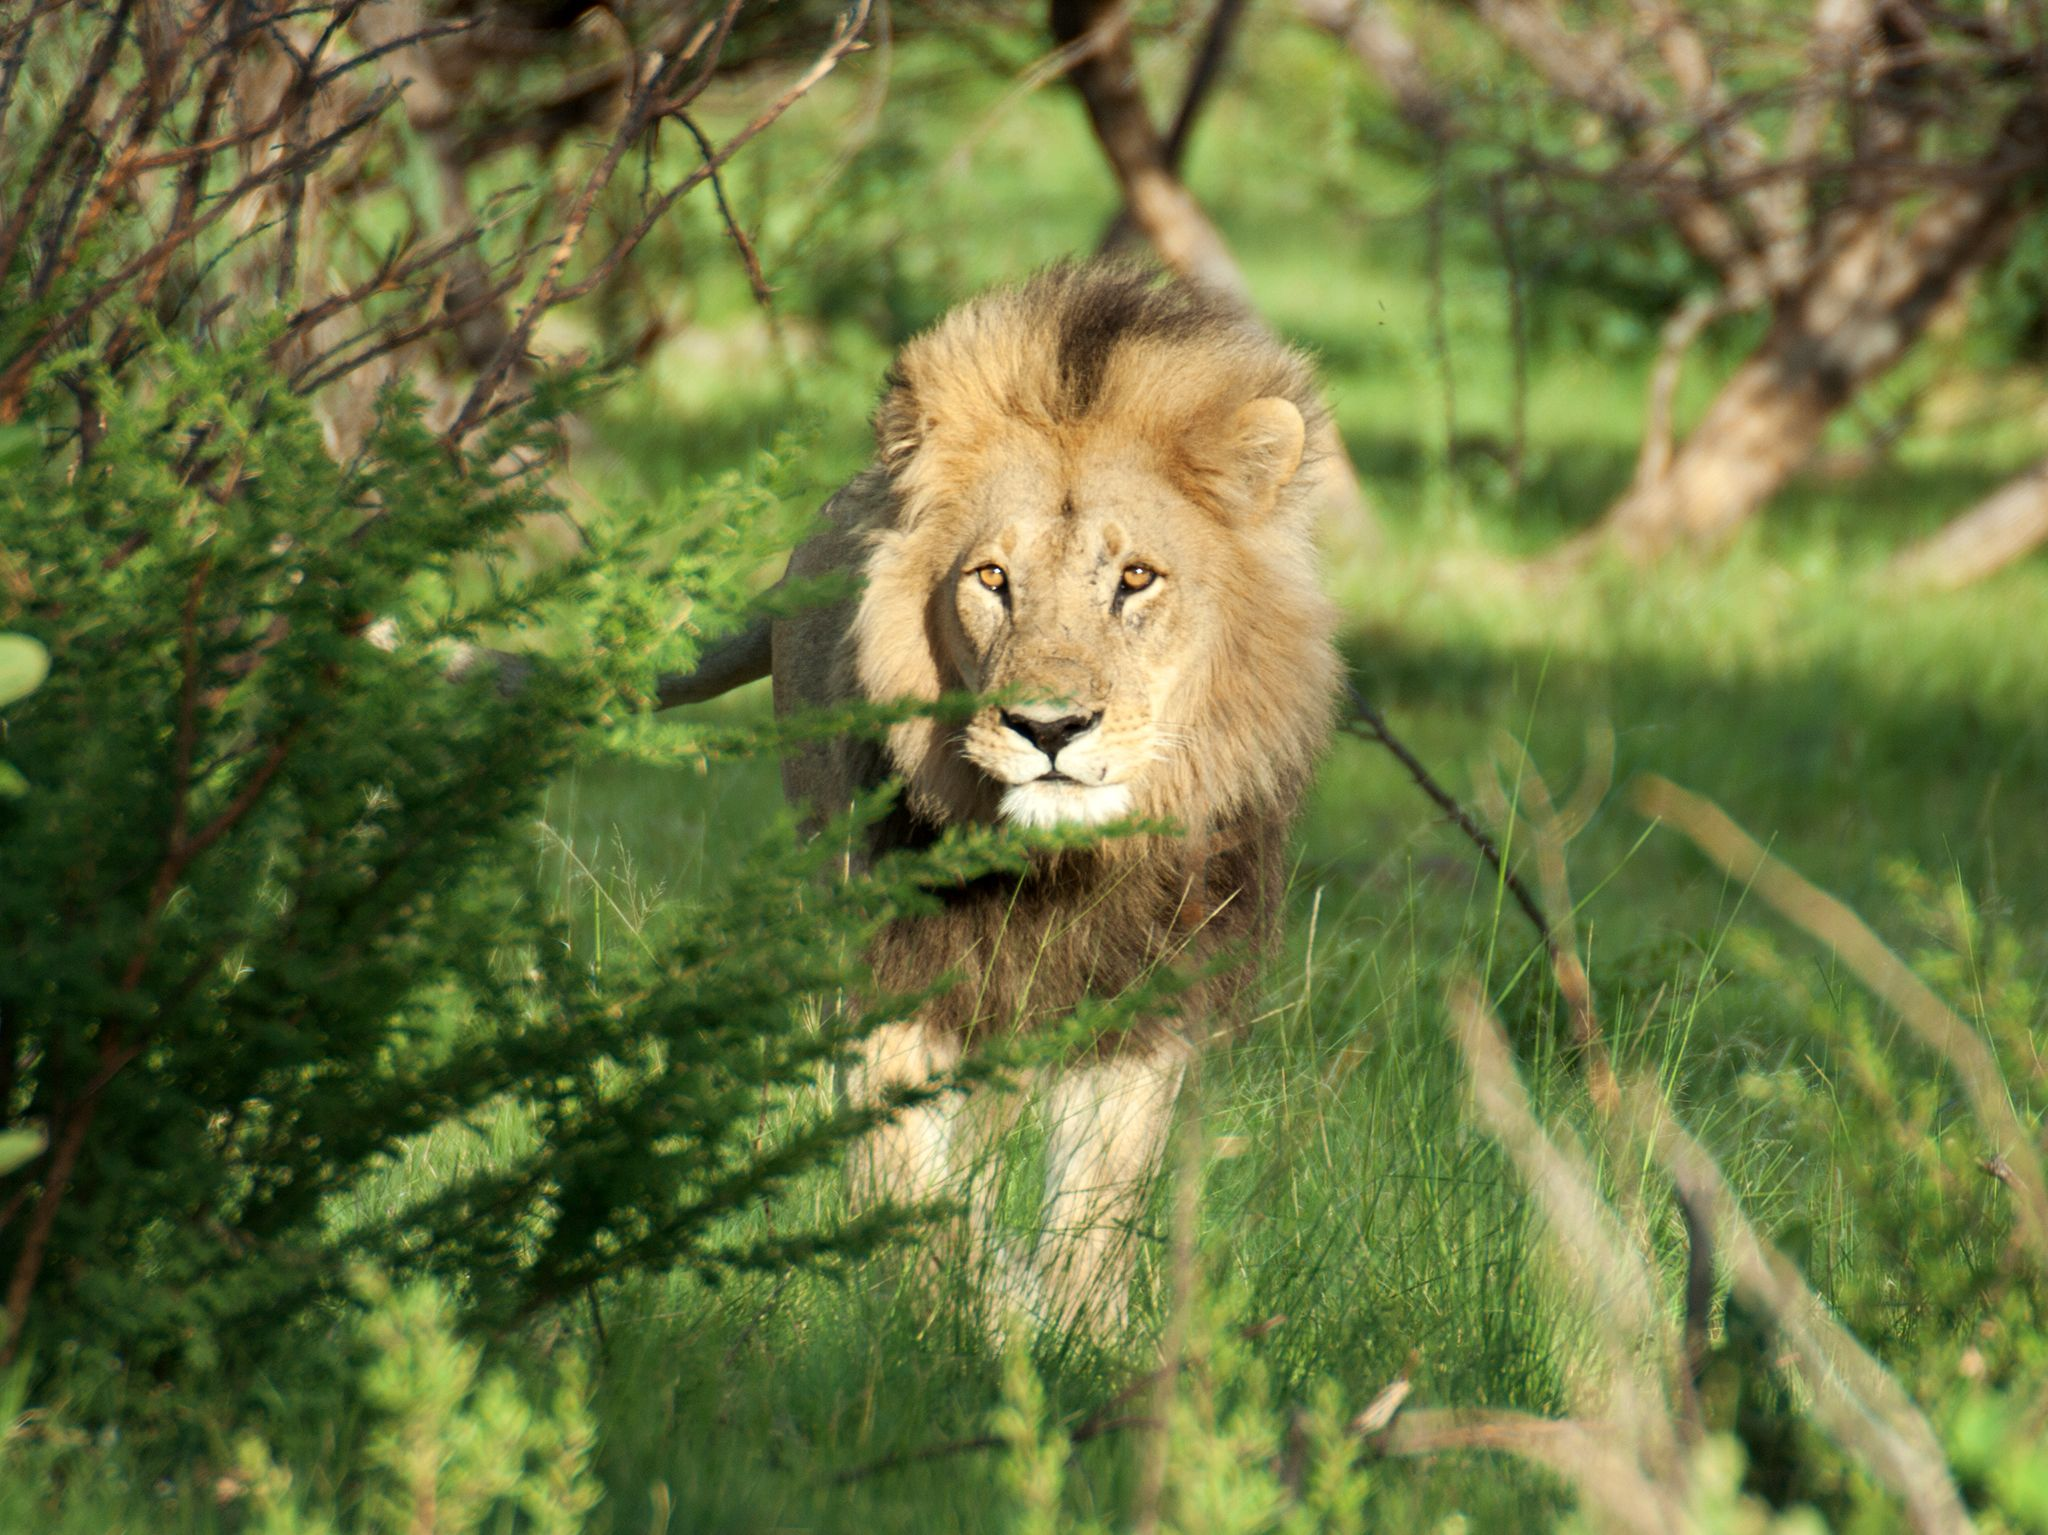 Rwanda: Male lion in lush Rwanda grassland. This image is from Return of the Lion. [Photo of the day - March 2020]